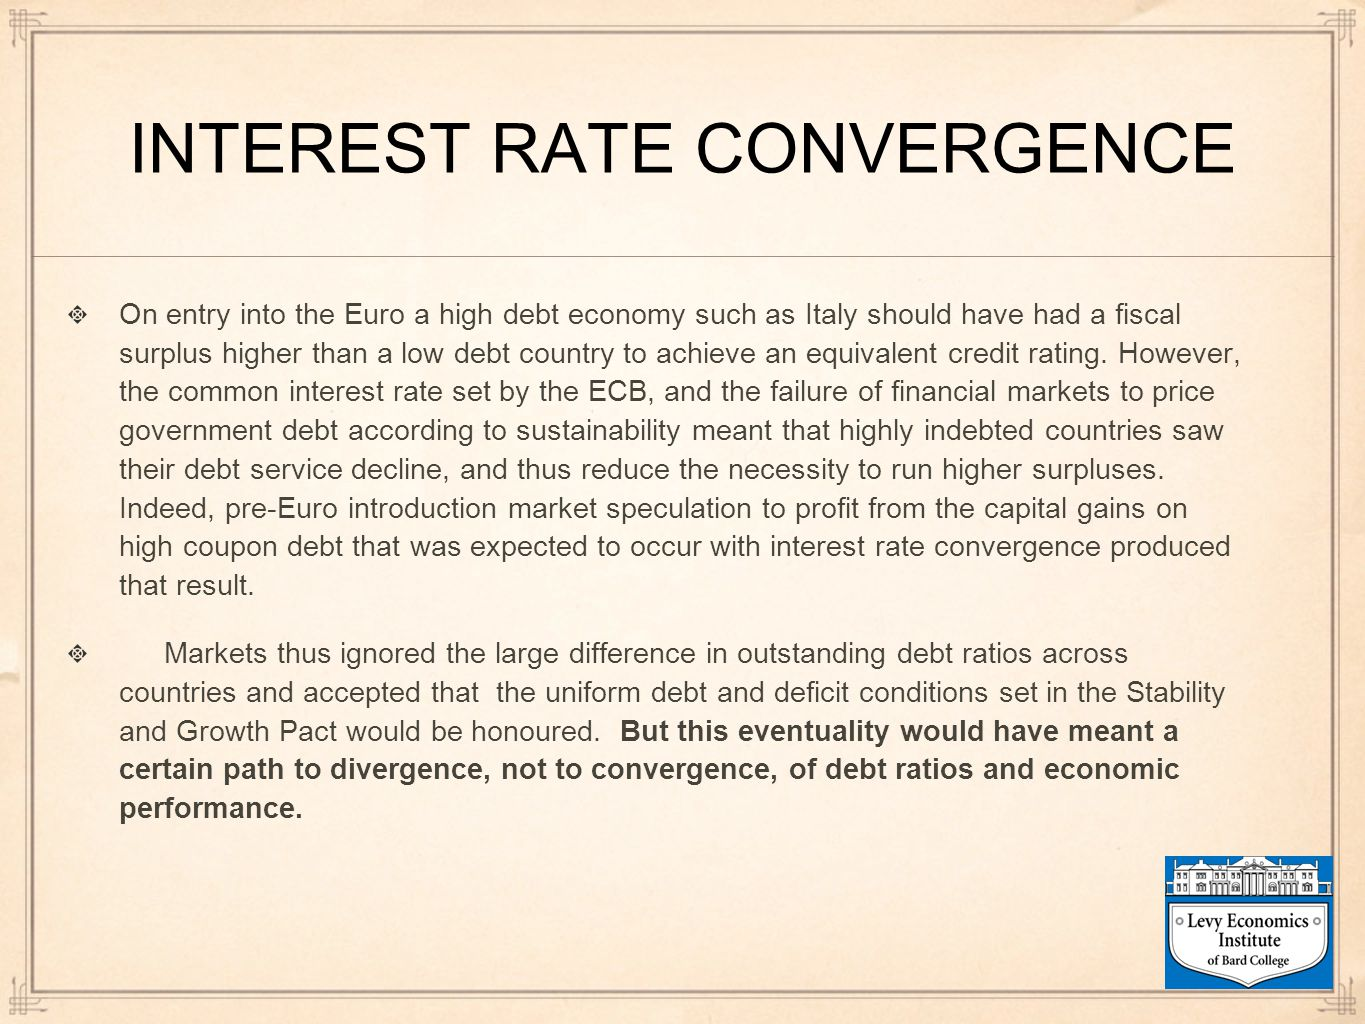 INTEREST RATE CONVERGENCE On entry into the Euro a high debt economy such as Italy should have had a fiscal surplus higher than a low debt country to